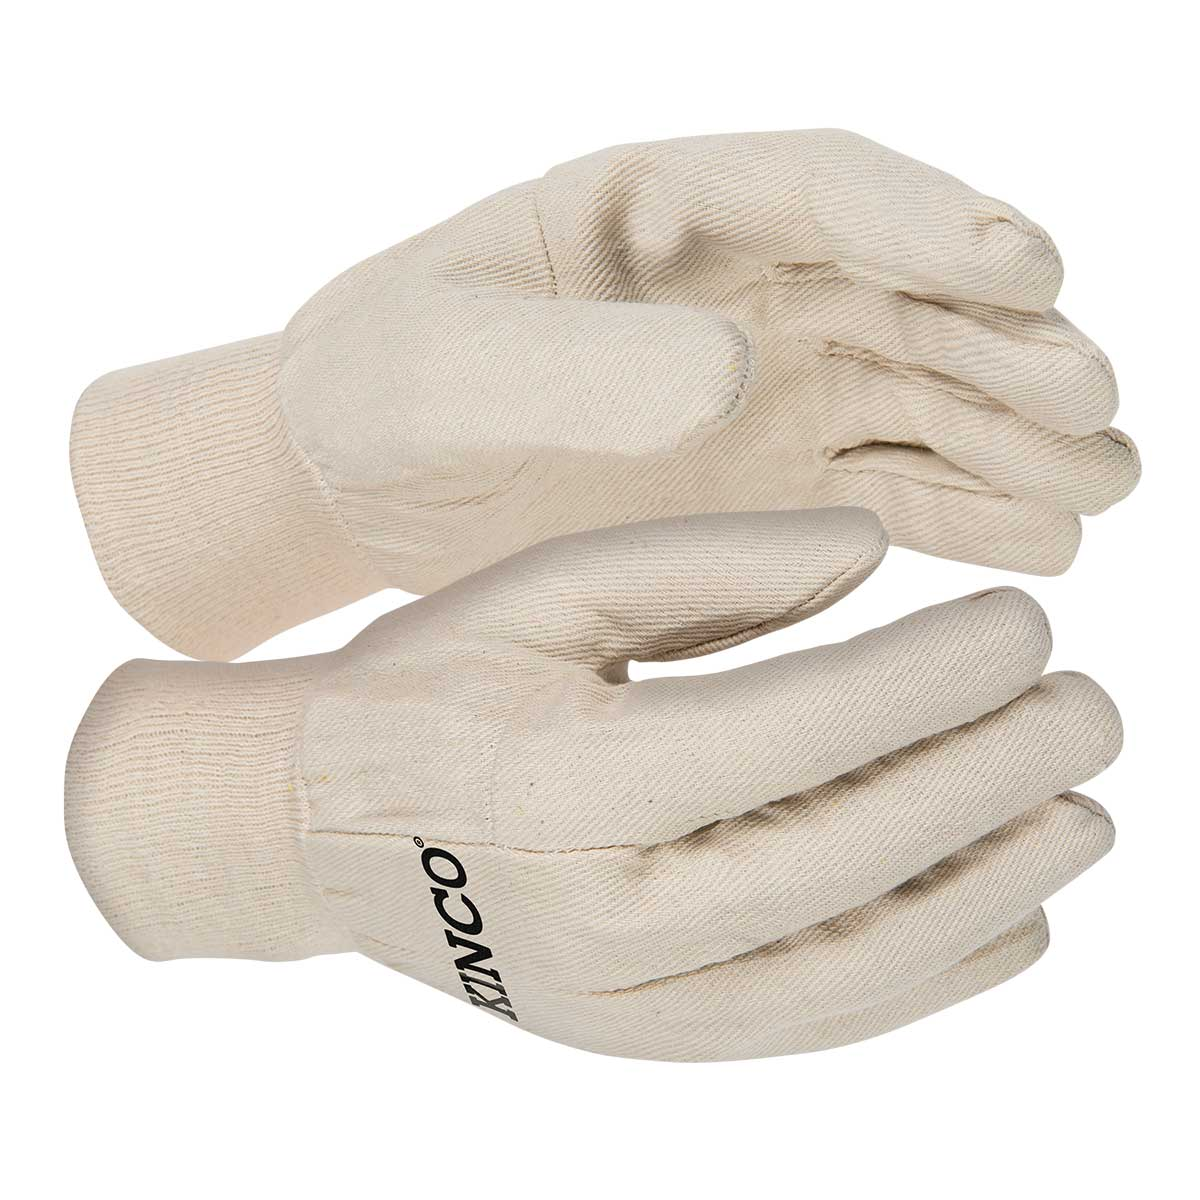 Kinco Lightweight Cotton Chore Gloves, Dozen Pair